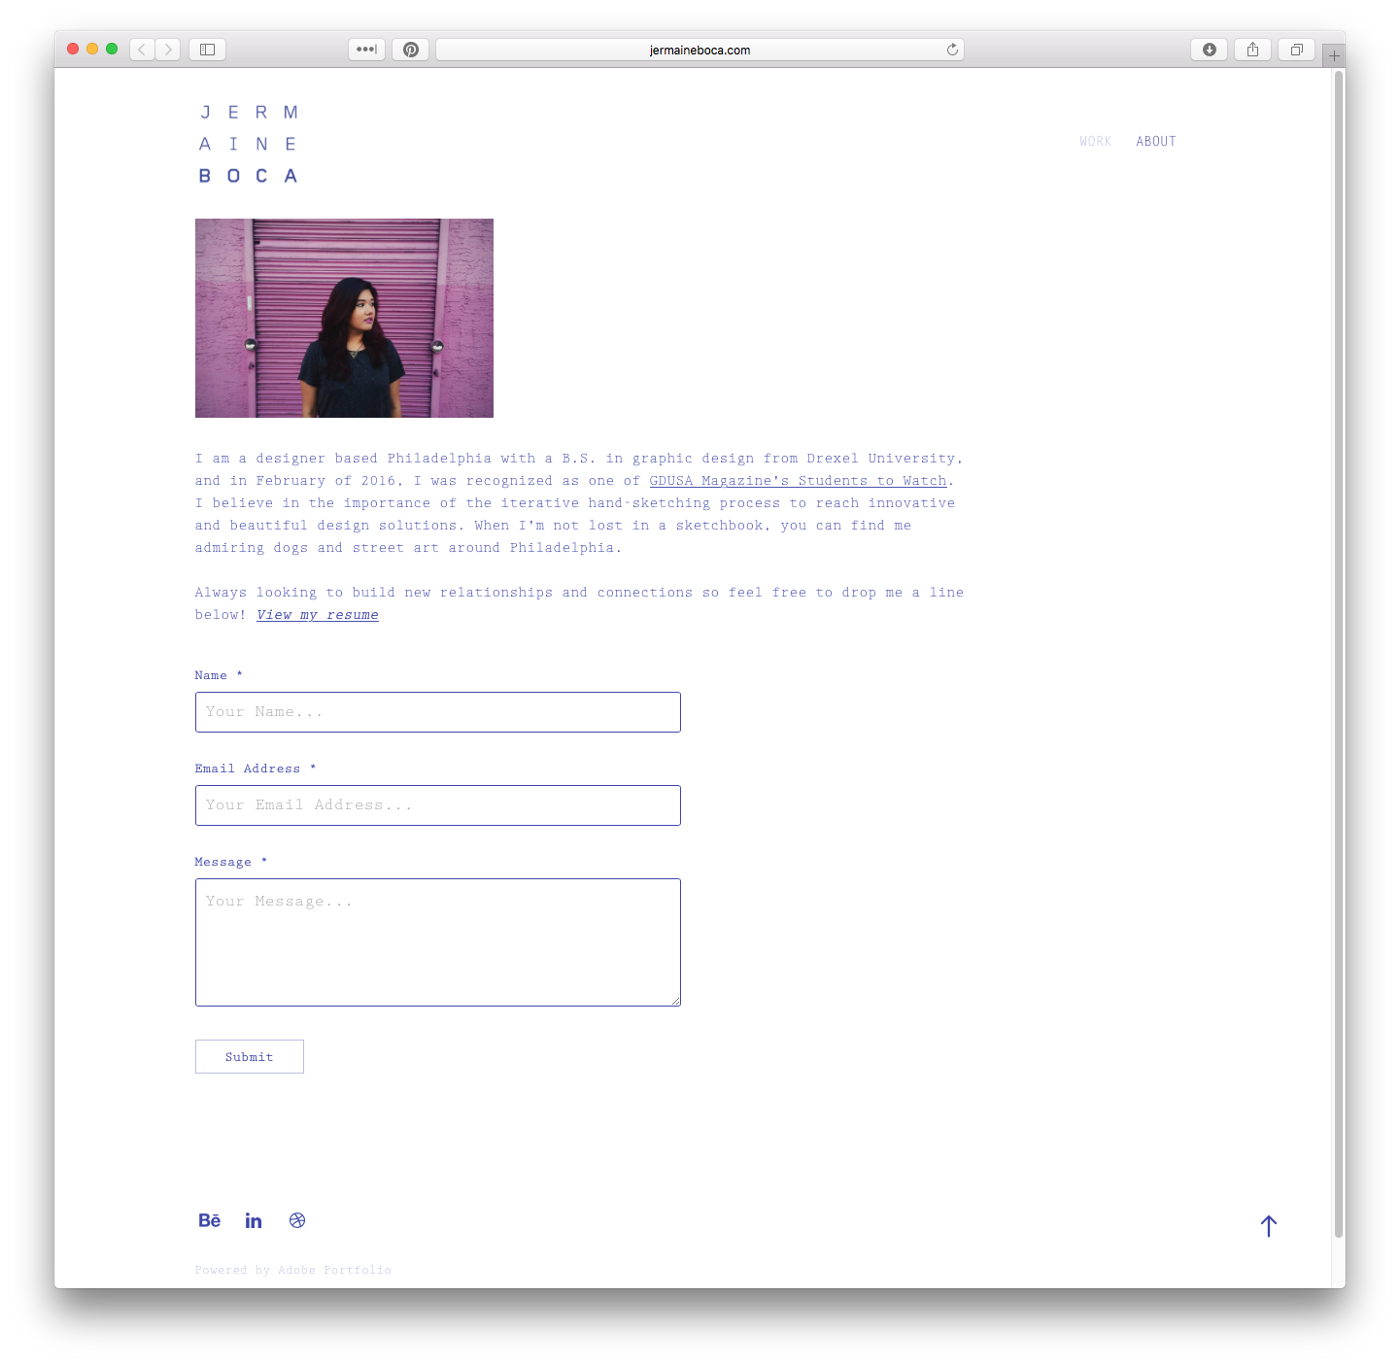 Stay in Touch with a Click: Contact Forms on Adobe Portfolio